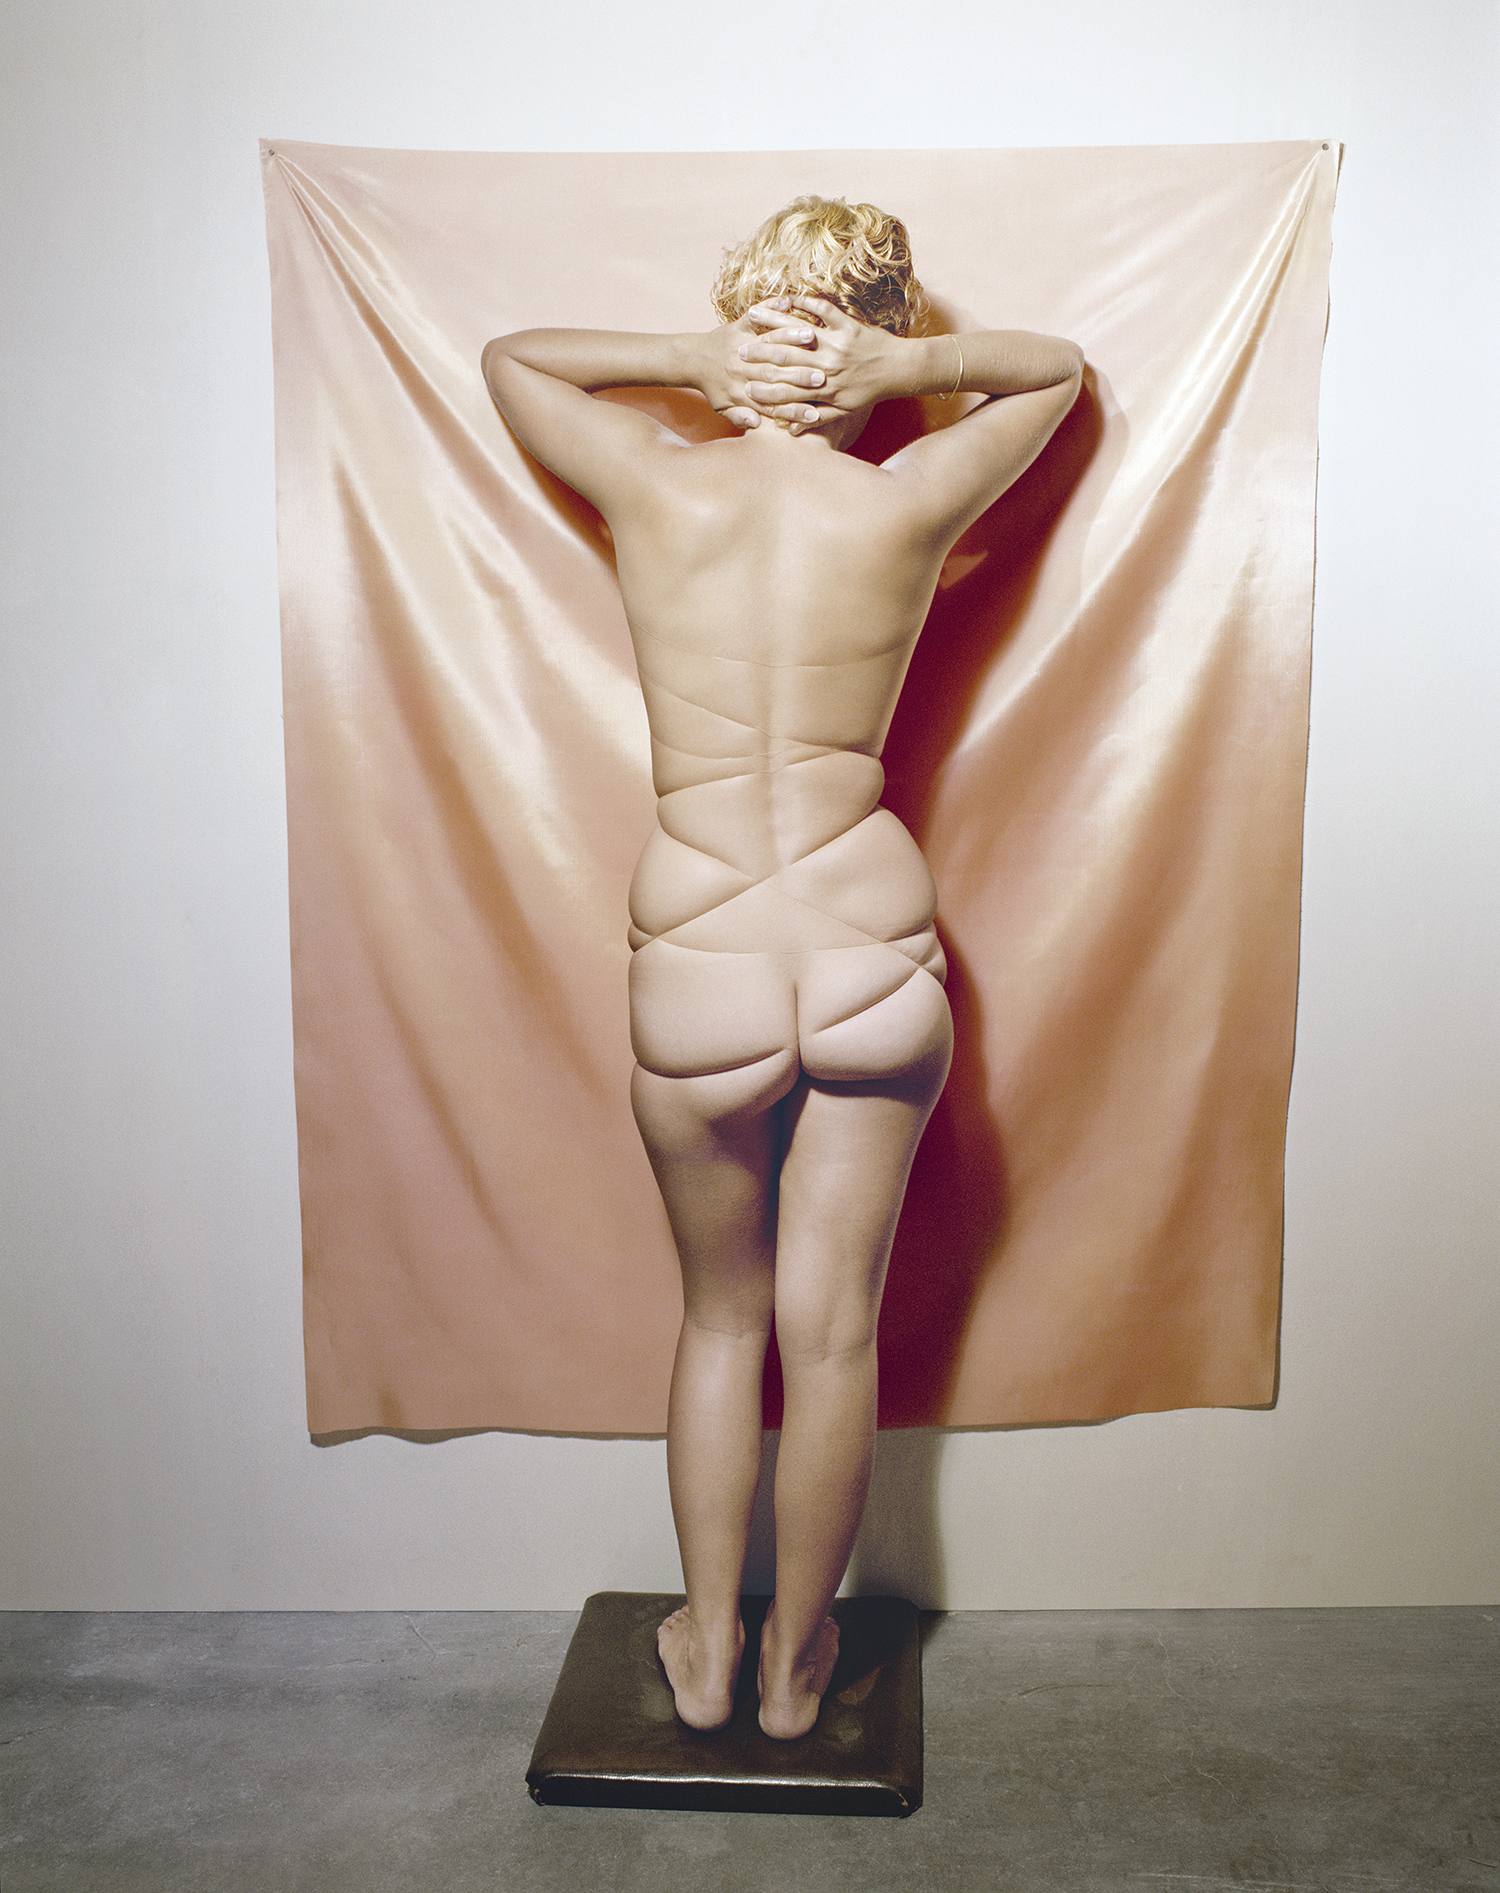 Jo Ann Callis, Untitled from Early Color Portfolio, 1976. Courtesy Rose Gallery at Curiosa, Paris Photo